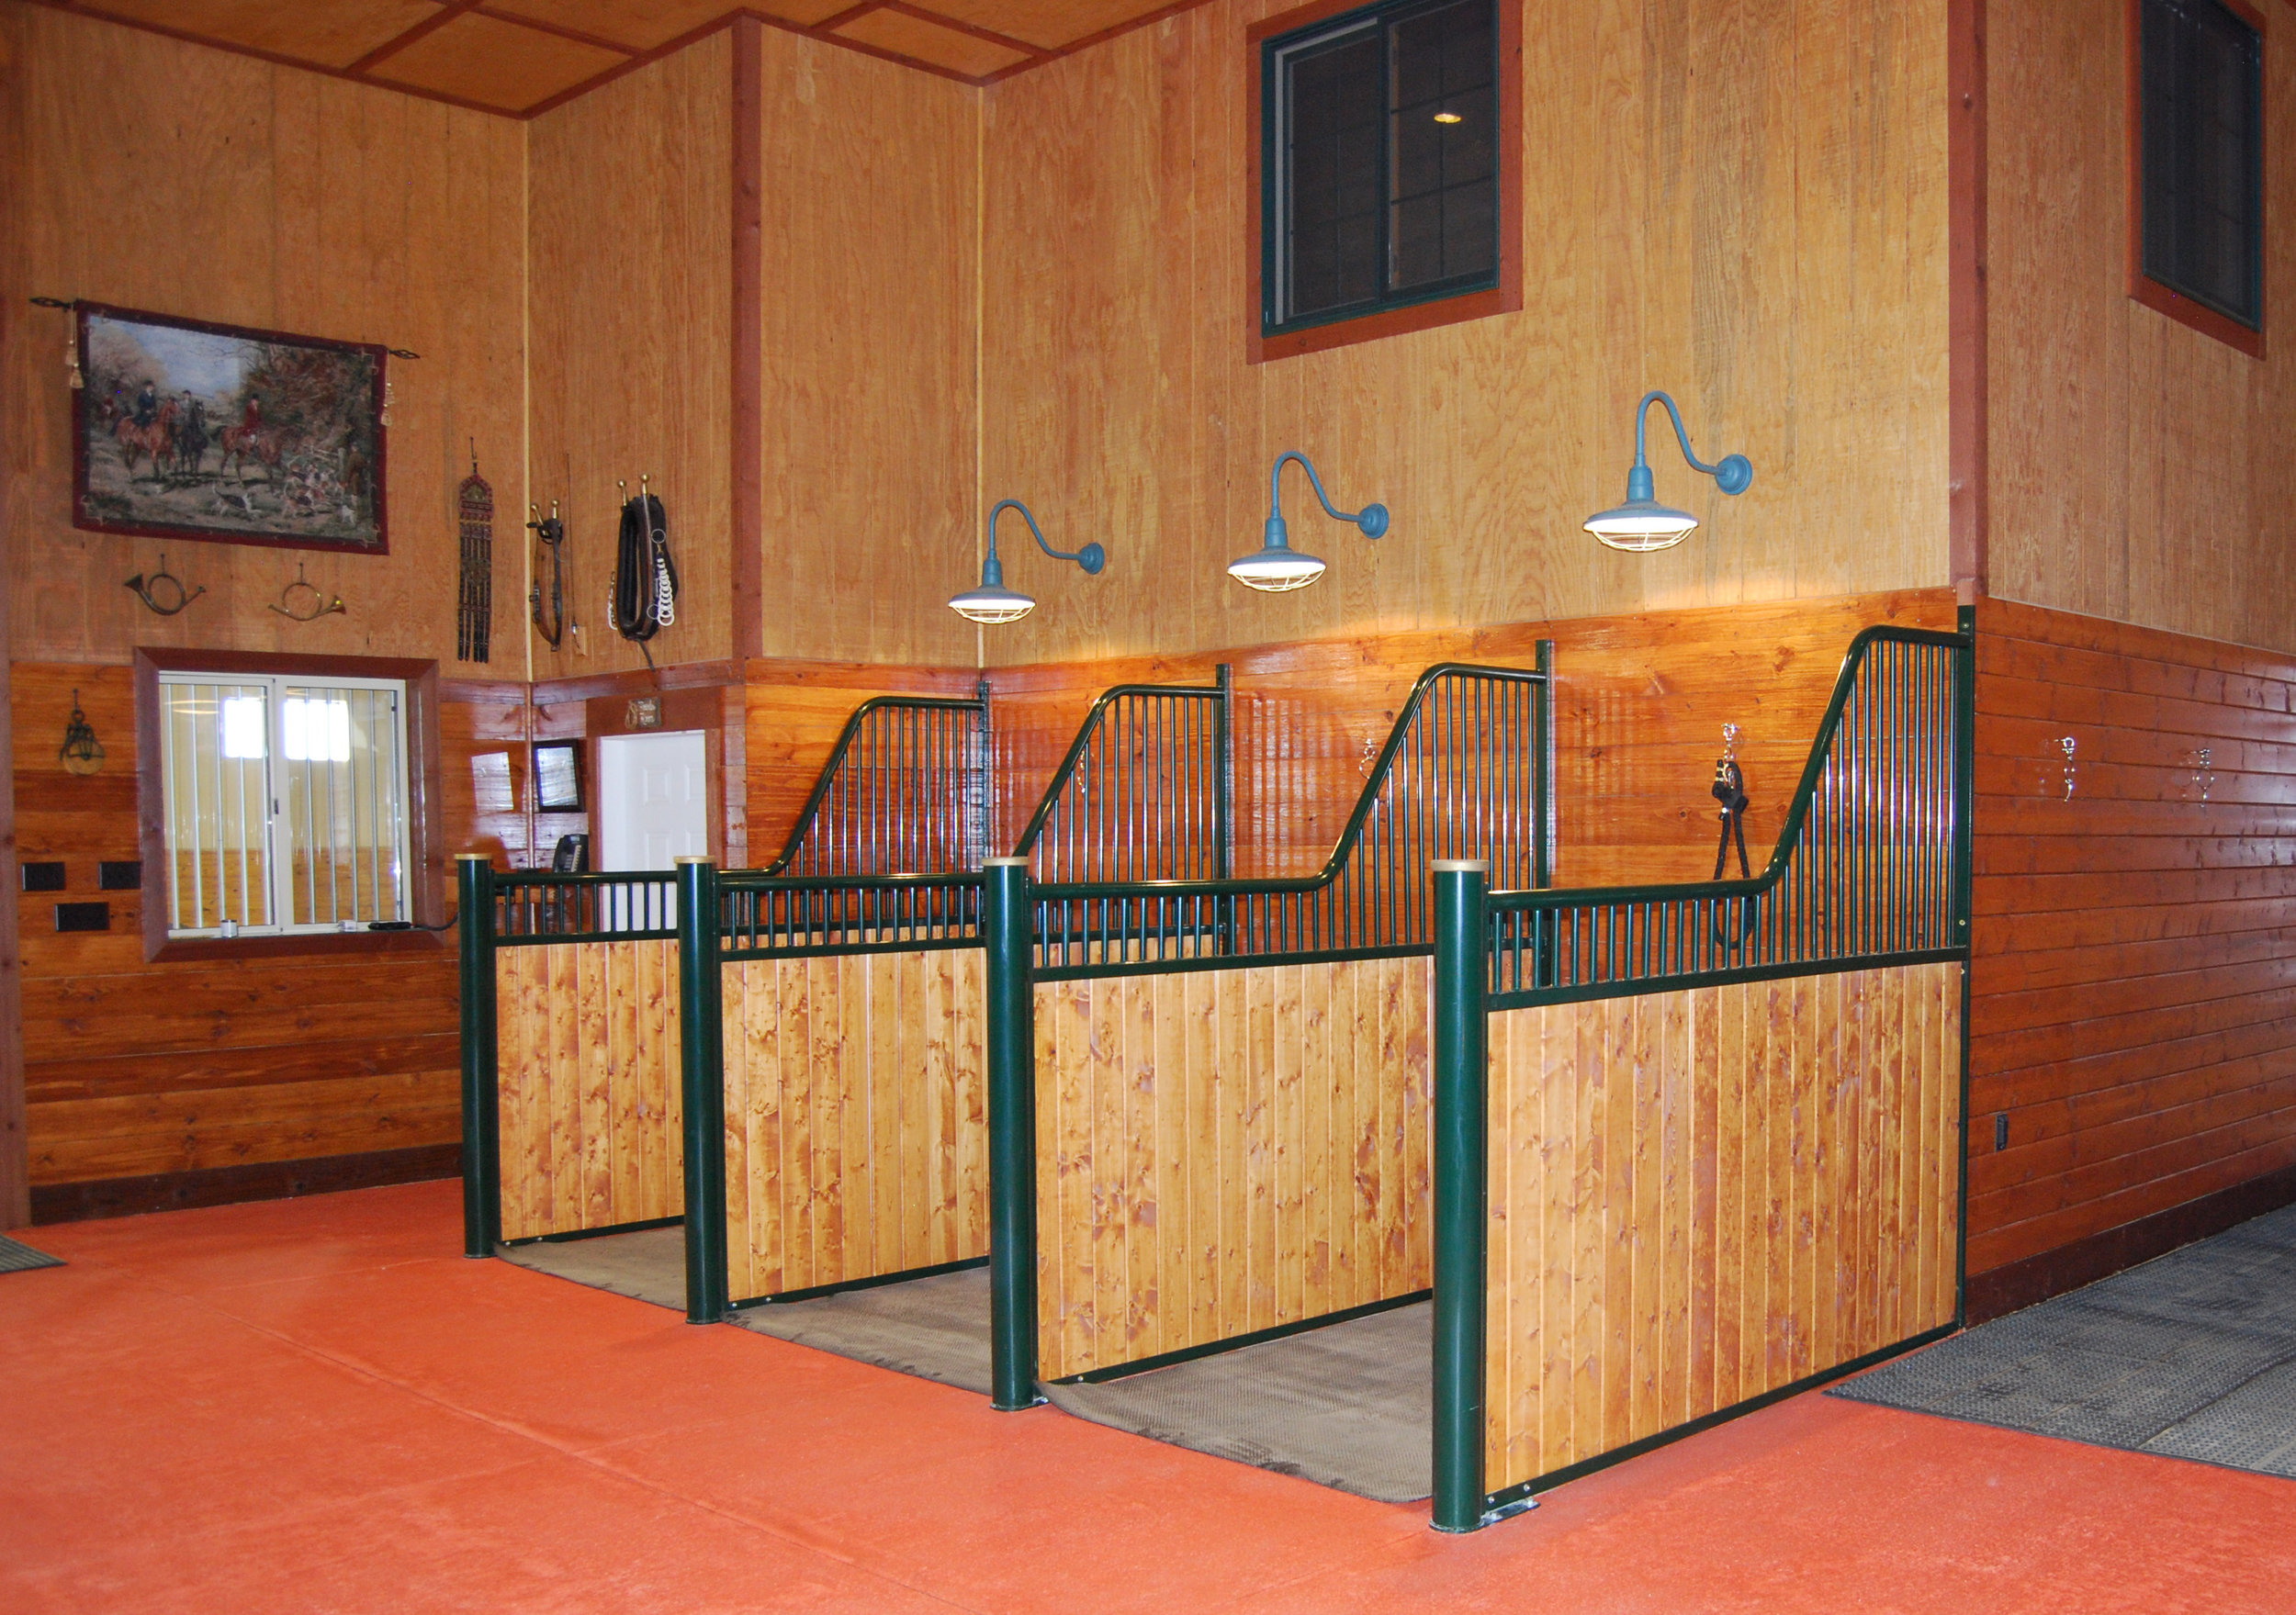 STALLPARTITIONS -